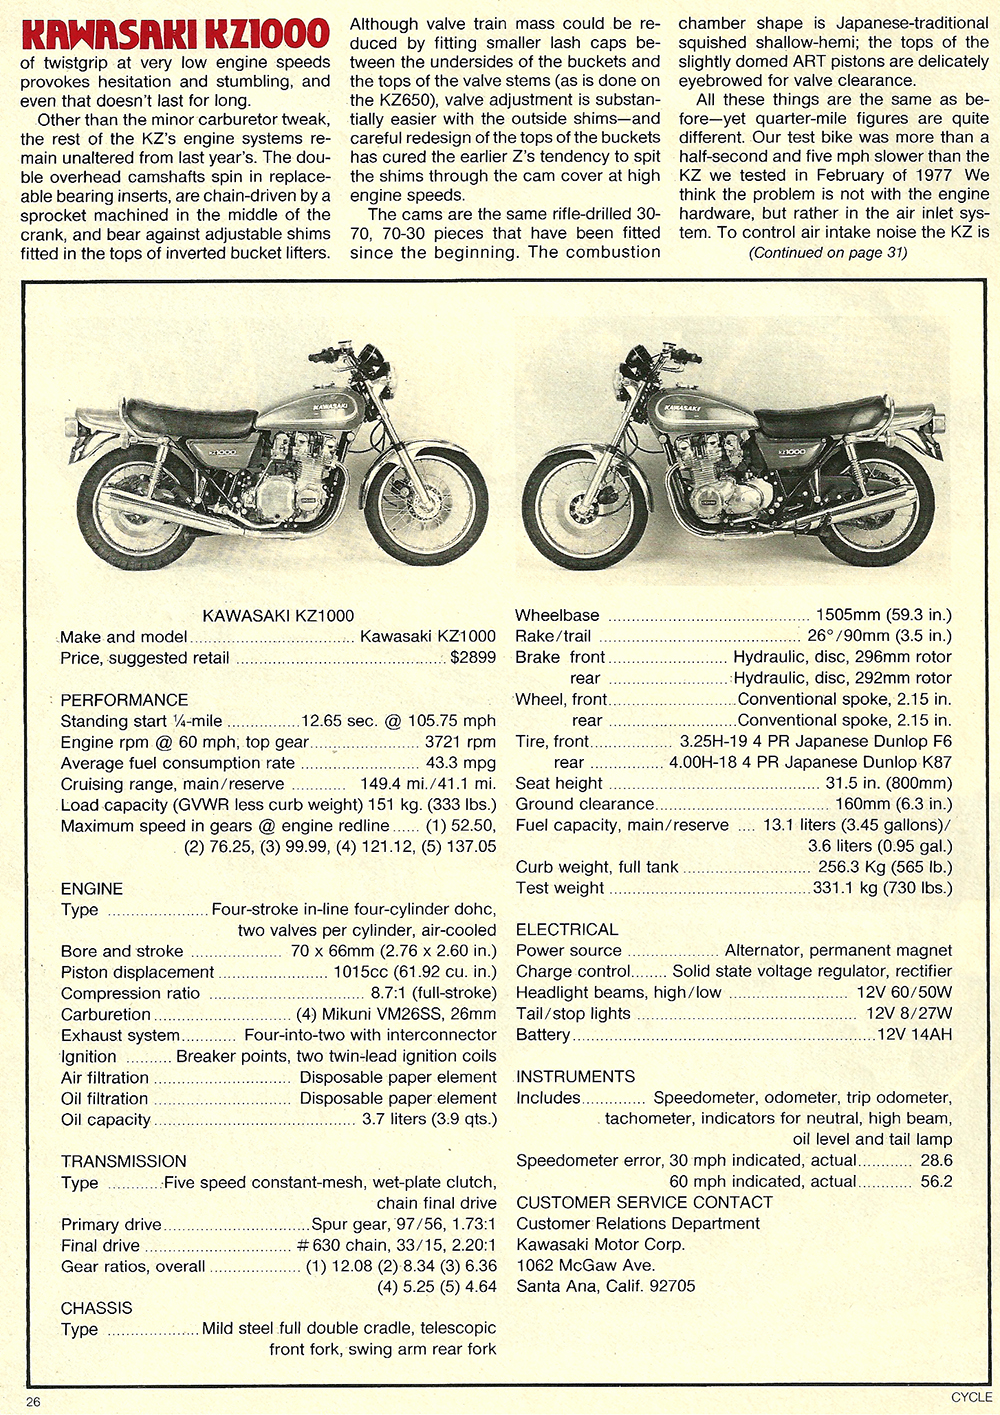 1978 Kawasaki KZ1000 road test 05.jpg